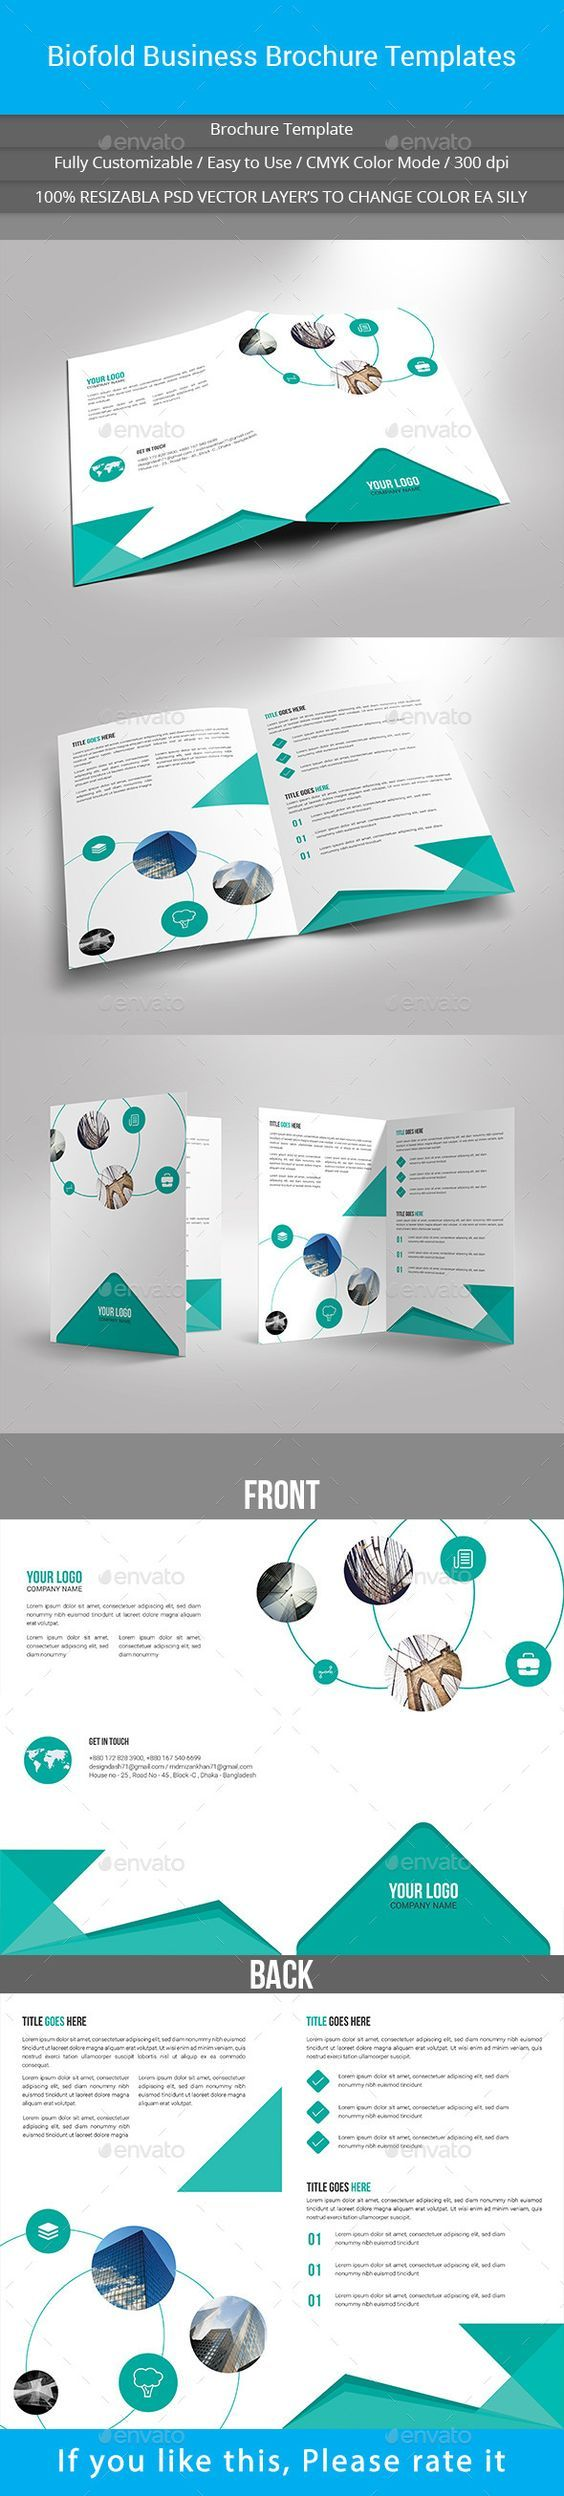 pharmacy brochure template free - 17 best images about top pharmacy brochure designs on